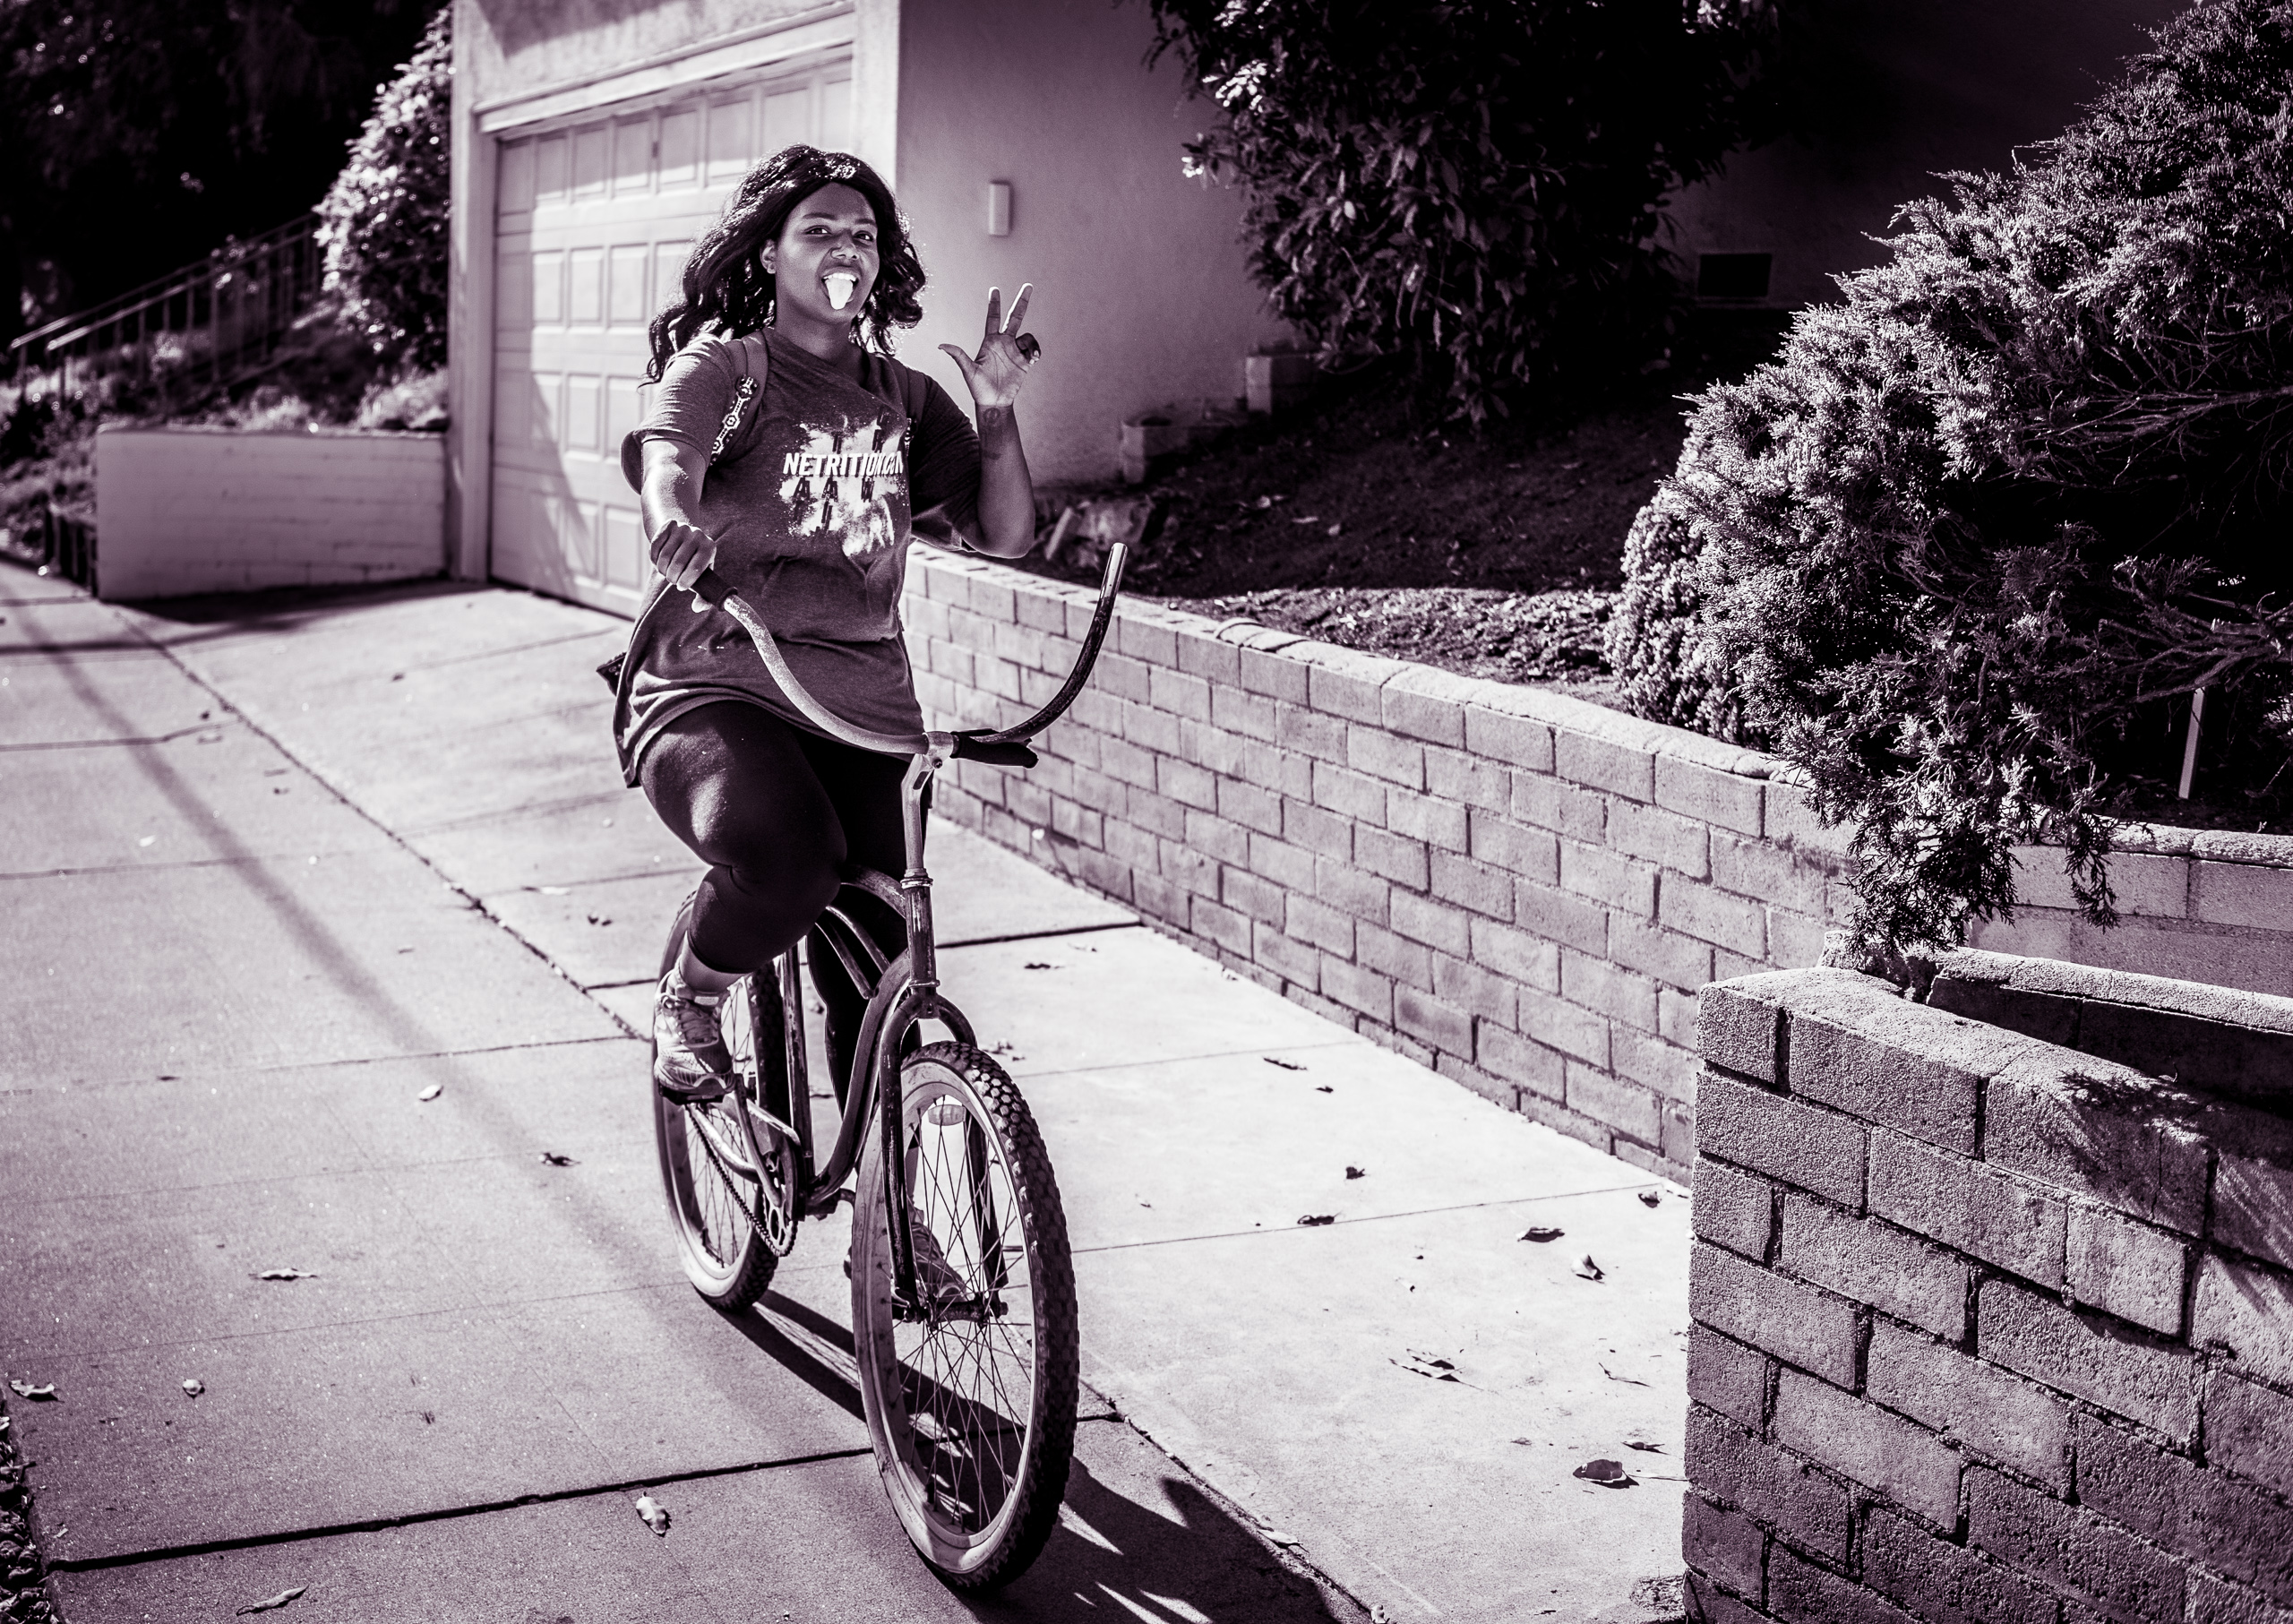 a woman rides a bike down the sidewalk of Olympic Blvd near Balsam Avenue in Century City, Los Angeles, California. As she passes me she sticks her tongue out and make a peace sign with one hand.